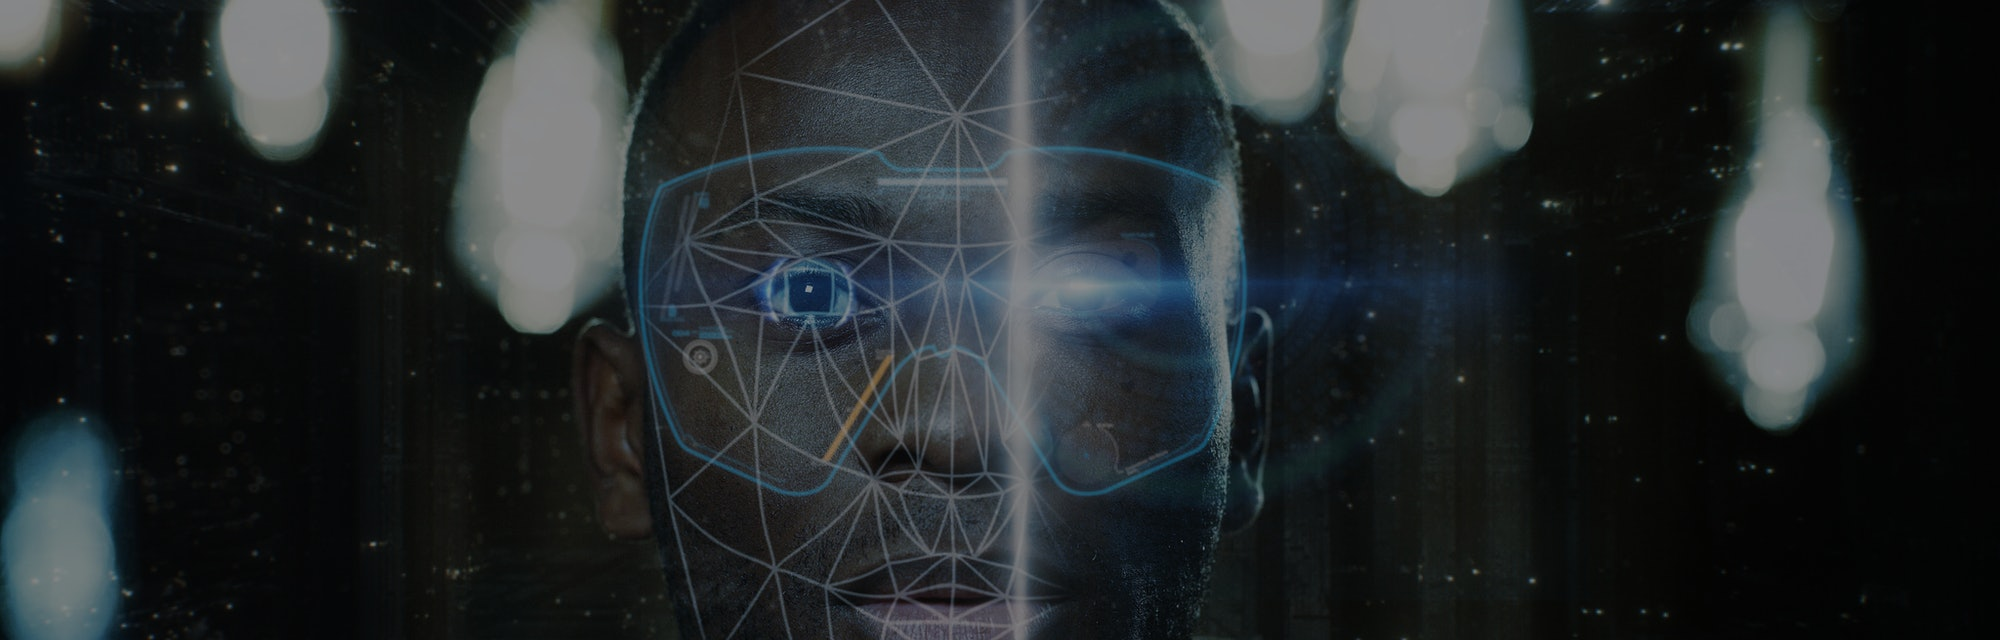 Futuristic and technological scanning of the face of a young african man for facial recognition and scanned person. Concept of  future, security, scanning, personal safety.